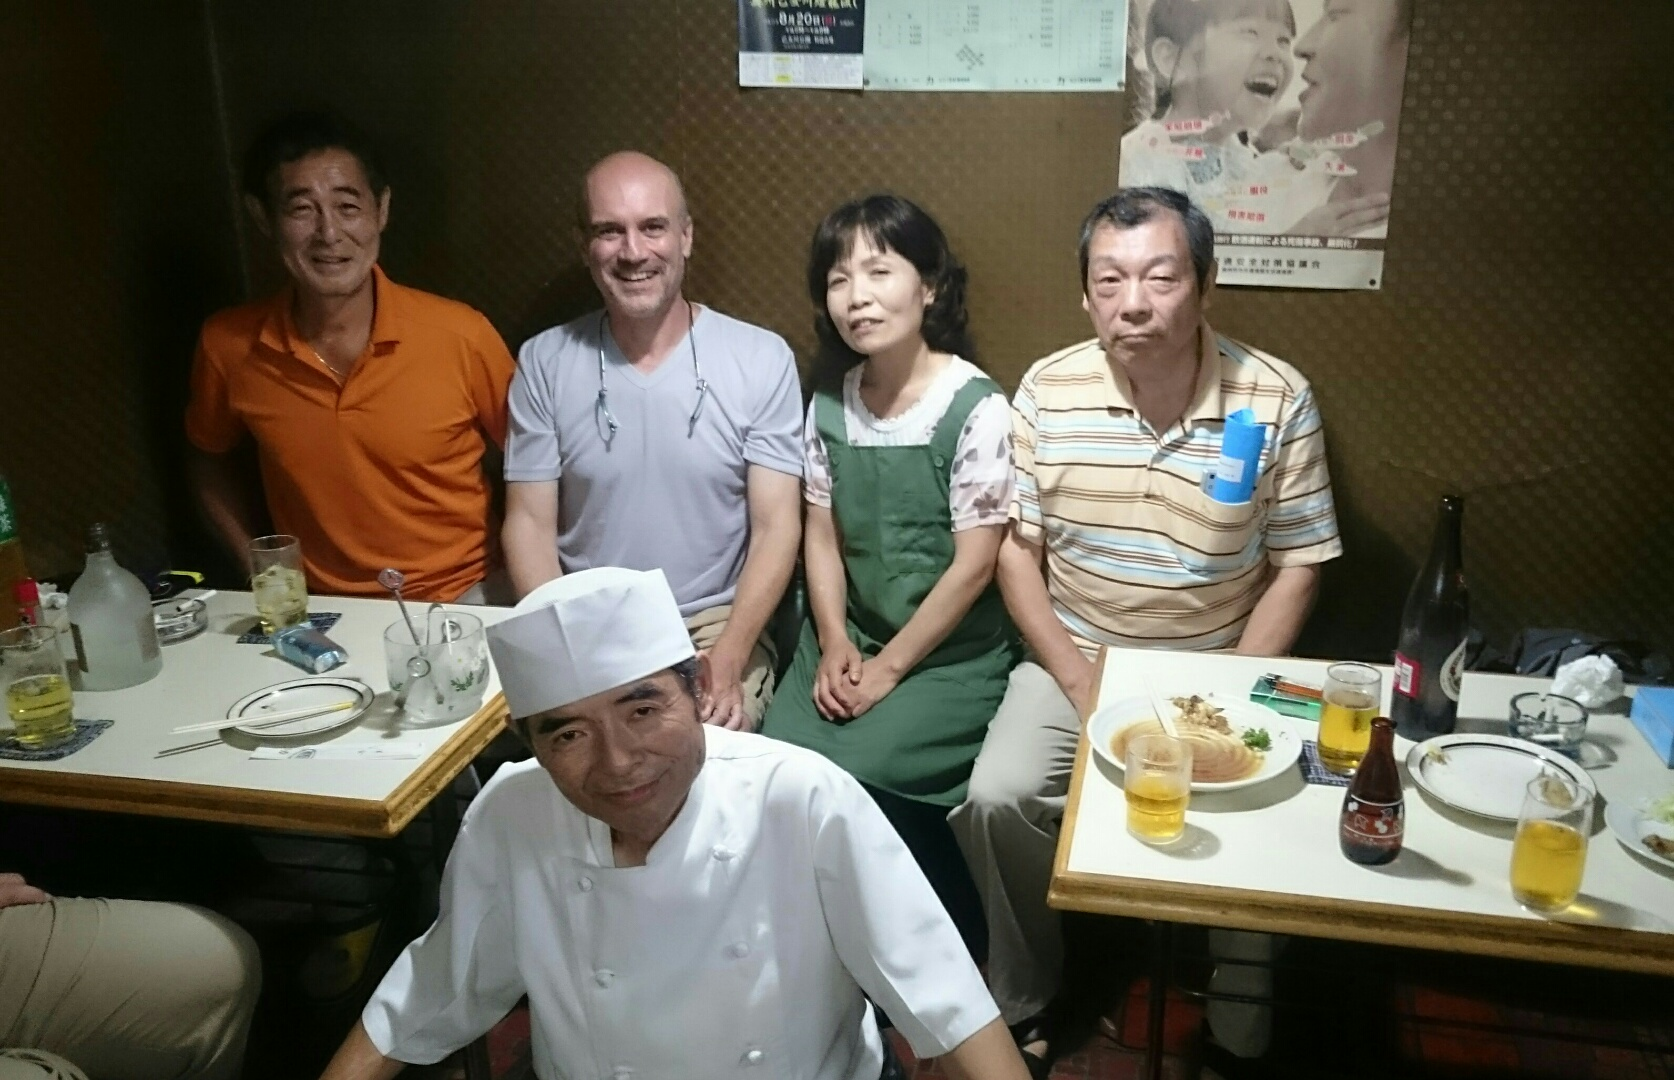 A local restaurant in Omagari, Japan